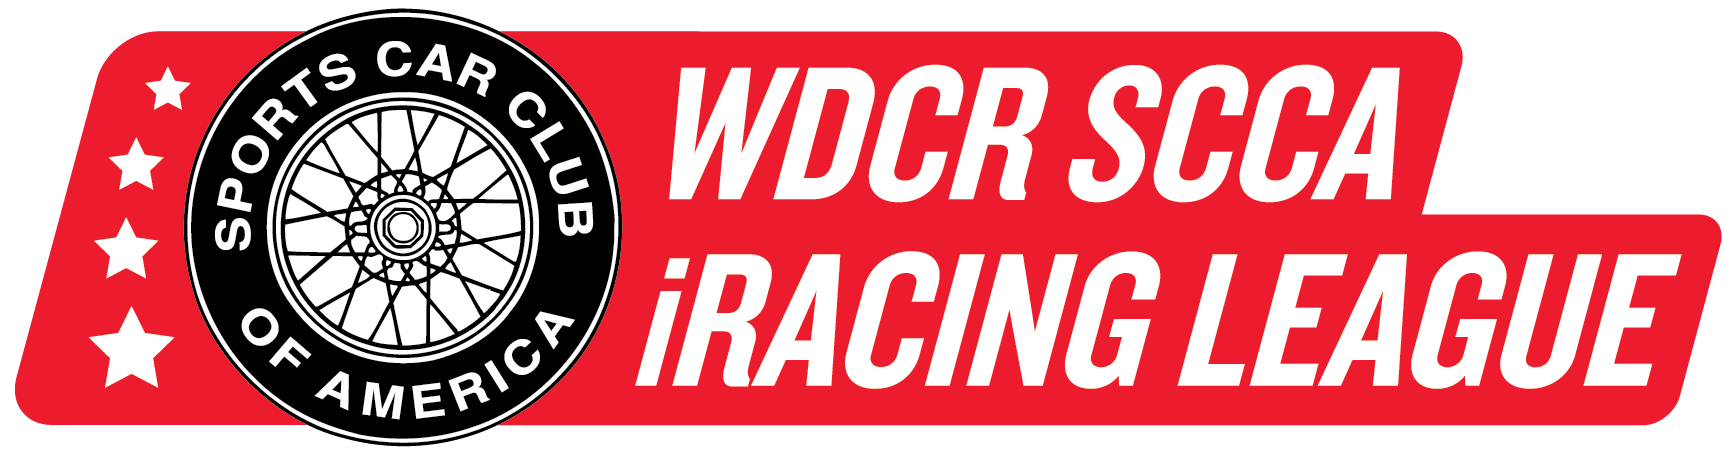 WDCR SCCA iRacing League - 2 Color.png